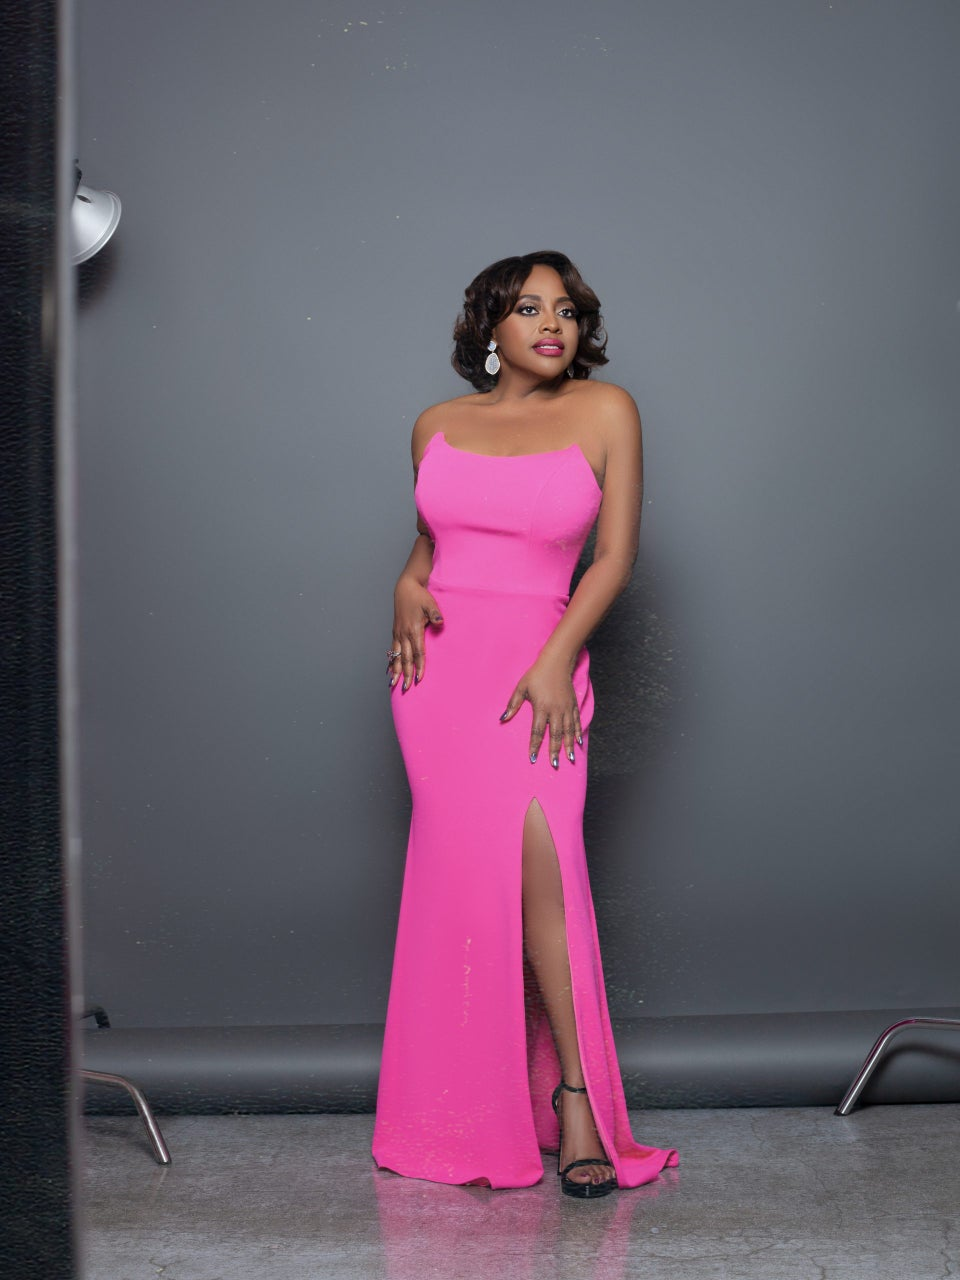 Sherri Shepherd Celebrates Black Hollywood Icons And A 20-Pound Weight Loss In Gorgeous Photo Shoot